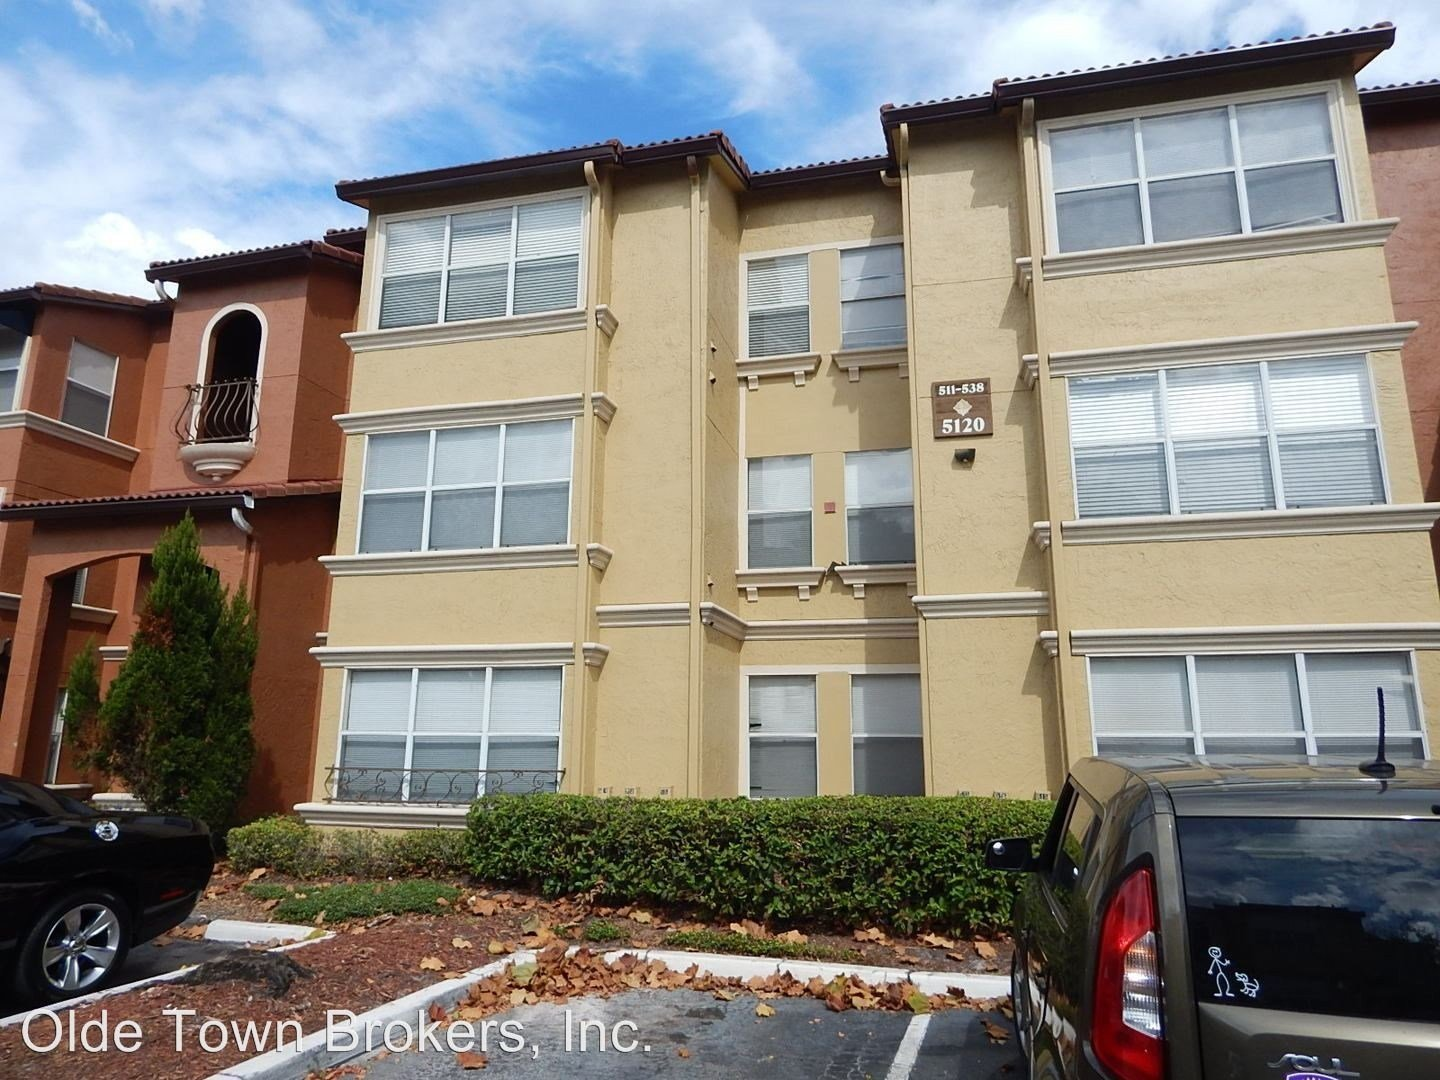 Best 5120 Conroy Rd 534 Orlando Fl 32811 1 Bedroom House For With Pictures